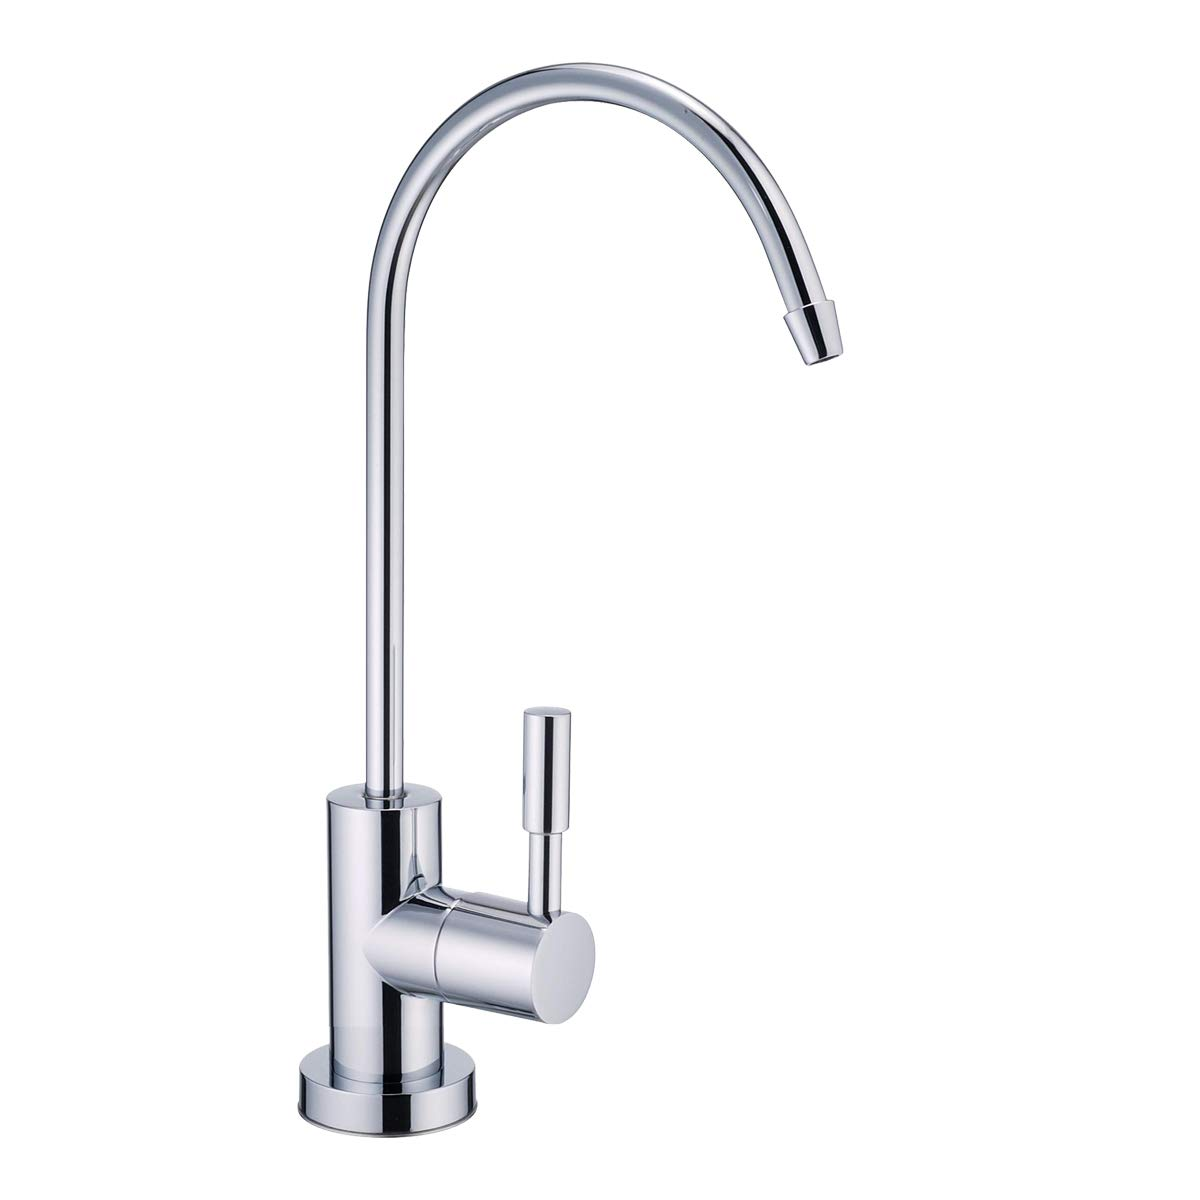 NSF Certification Lead-Free Water Filtration Reverse Osmosis Faucet Advanced RO Tap for Drinking, Kitchen Sink Cleaning   Safe, Healthier (Chrome) (Chrome)